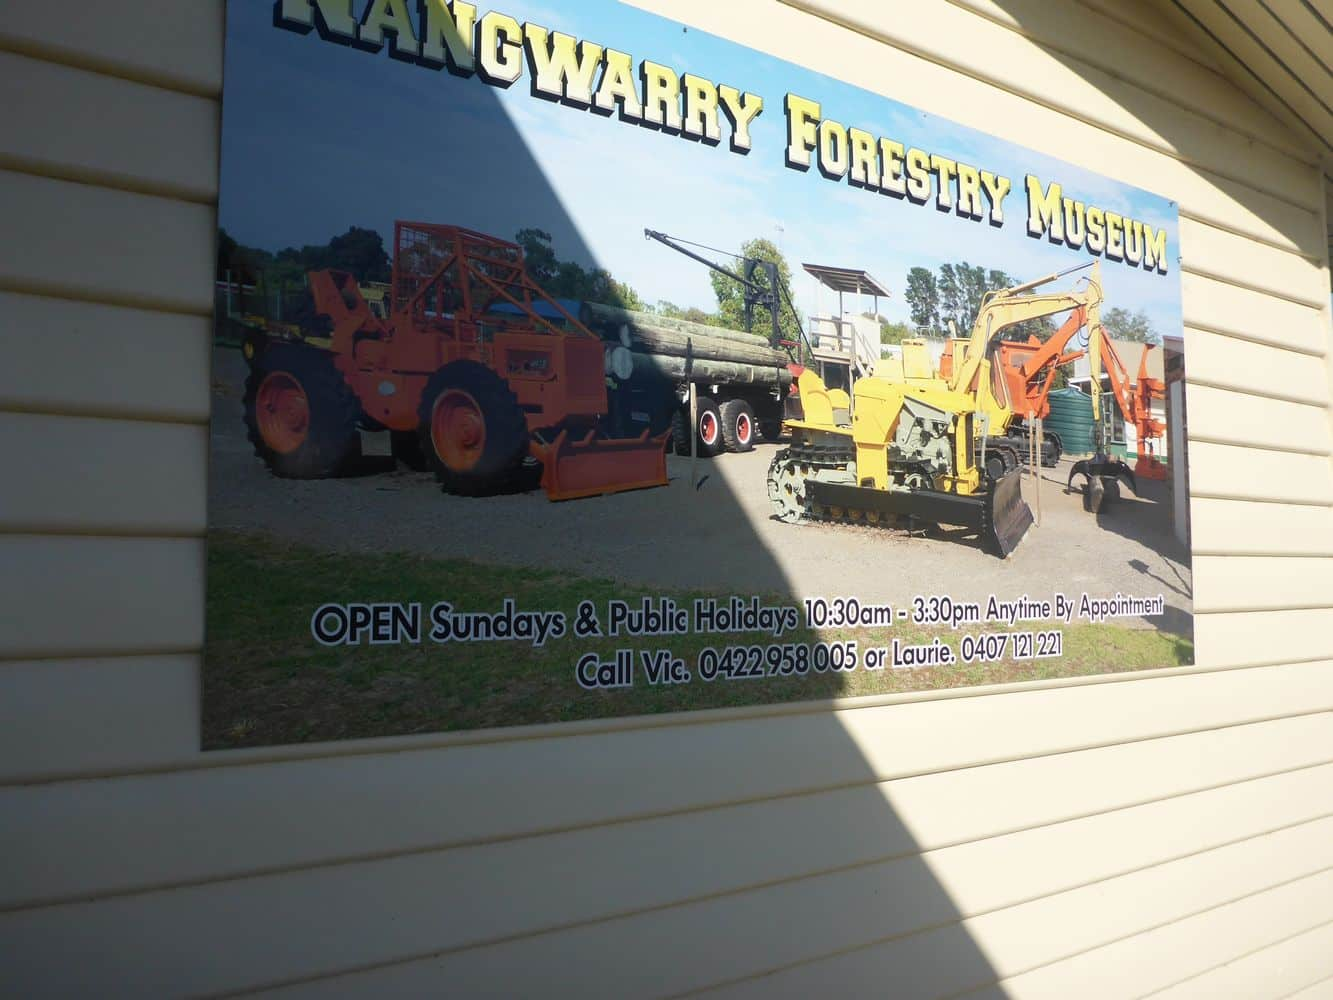 Nangwarry Forestry and Logging Museum 09